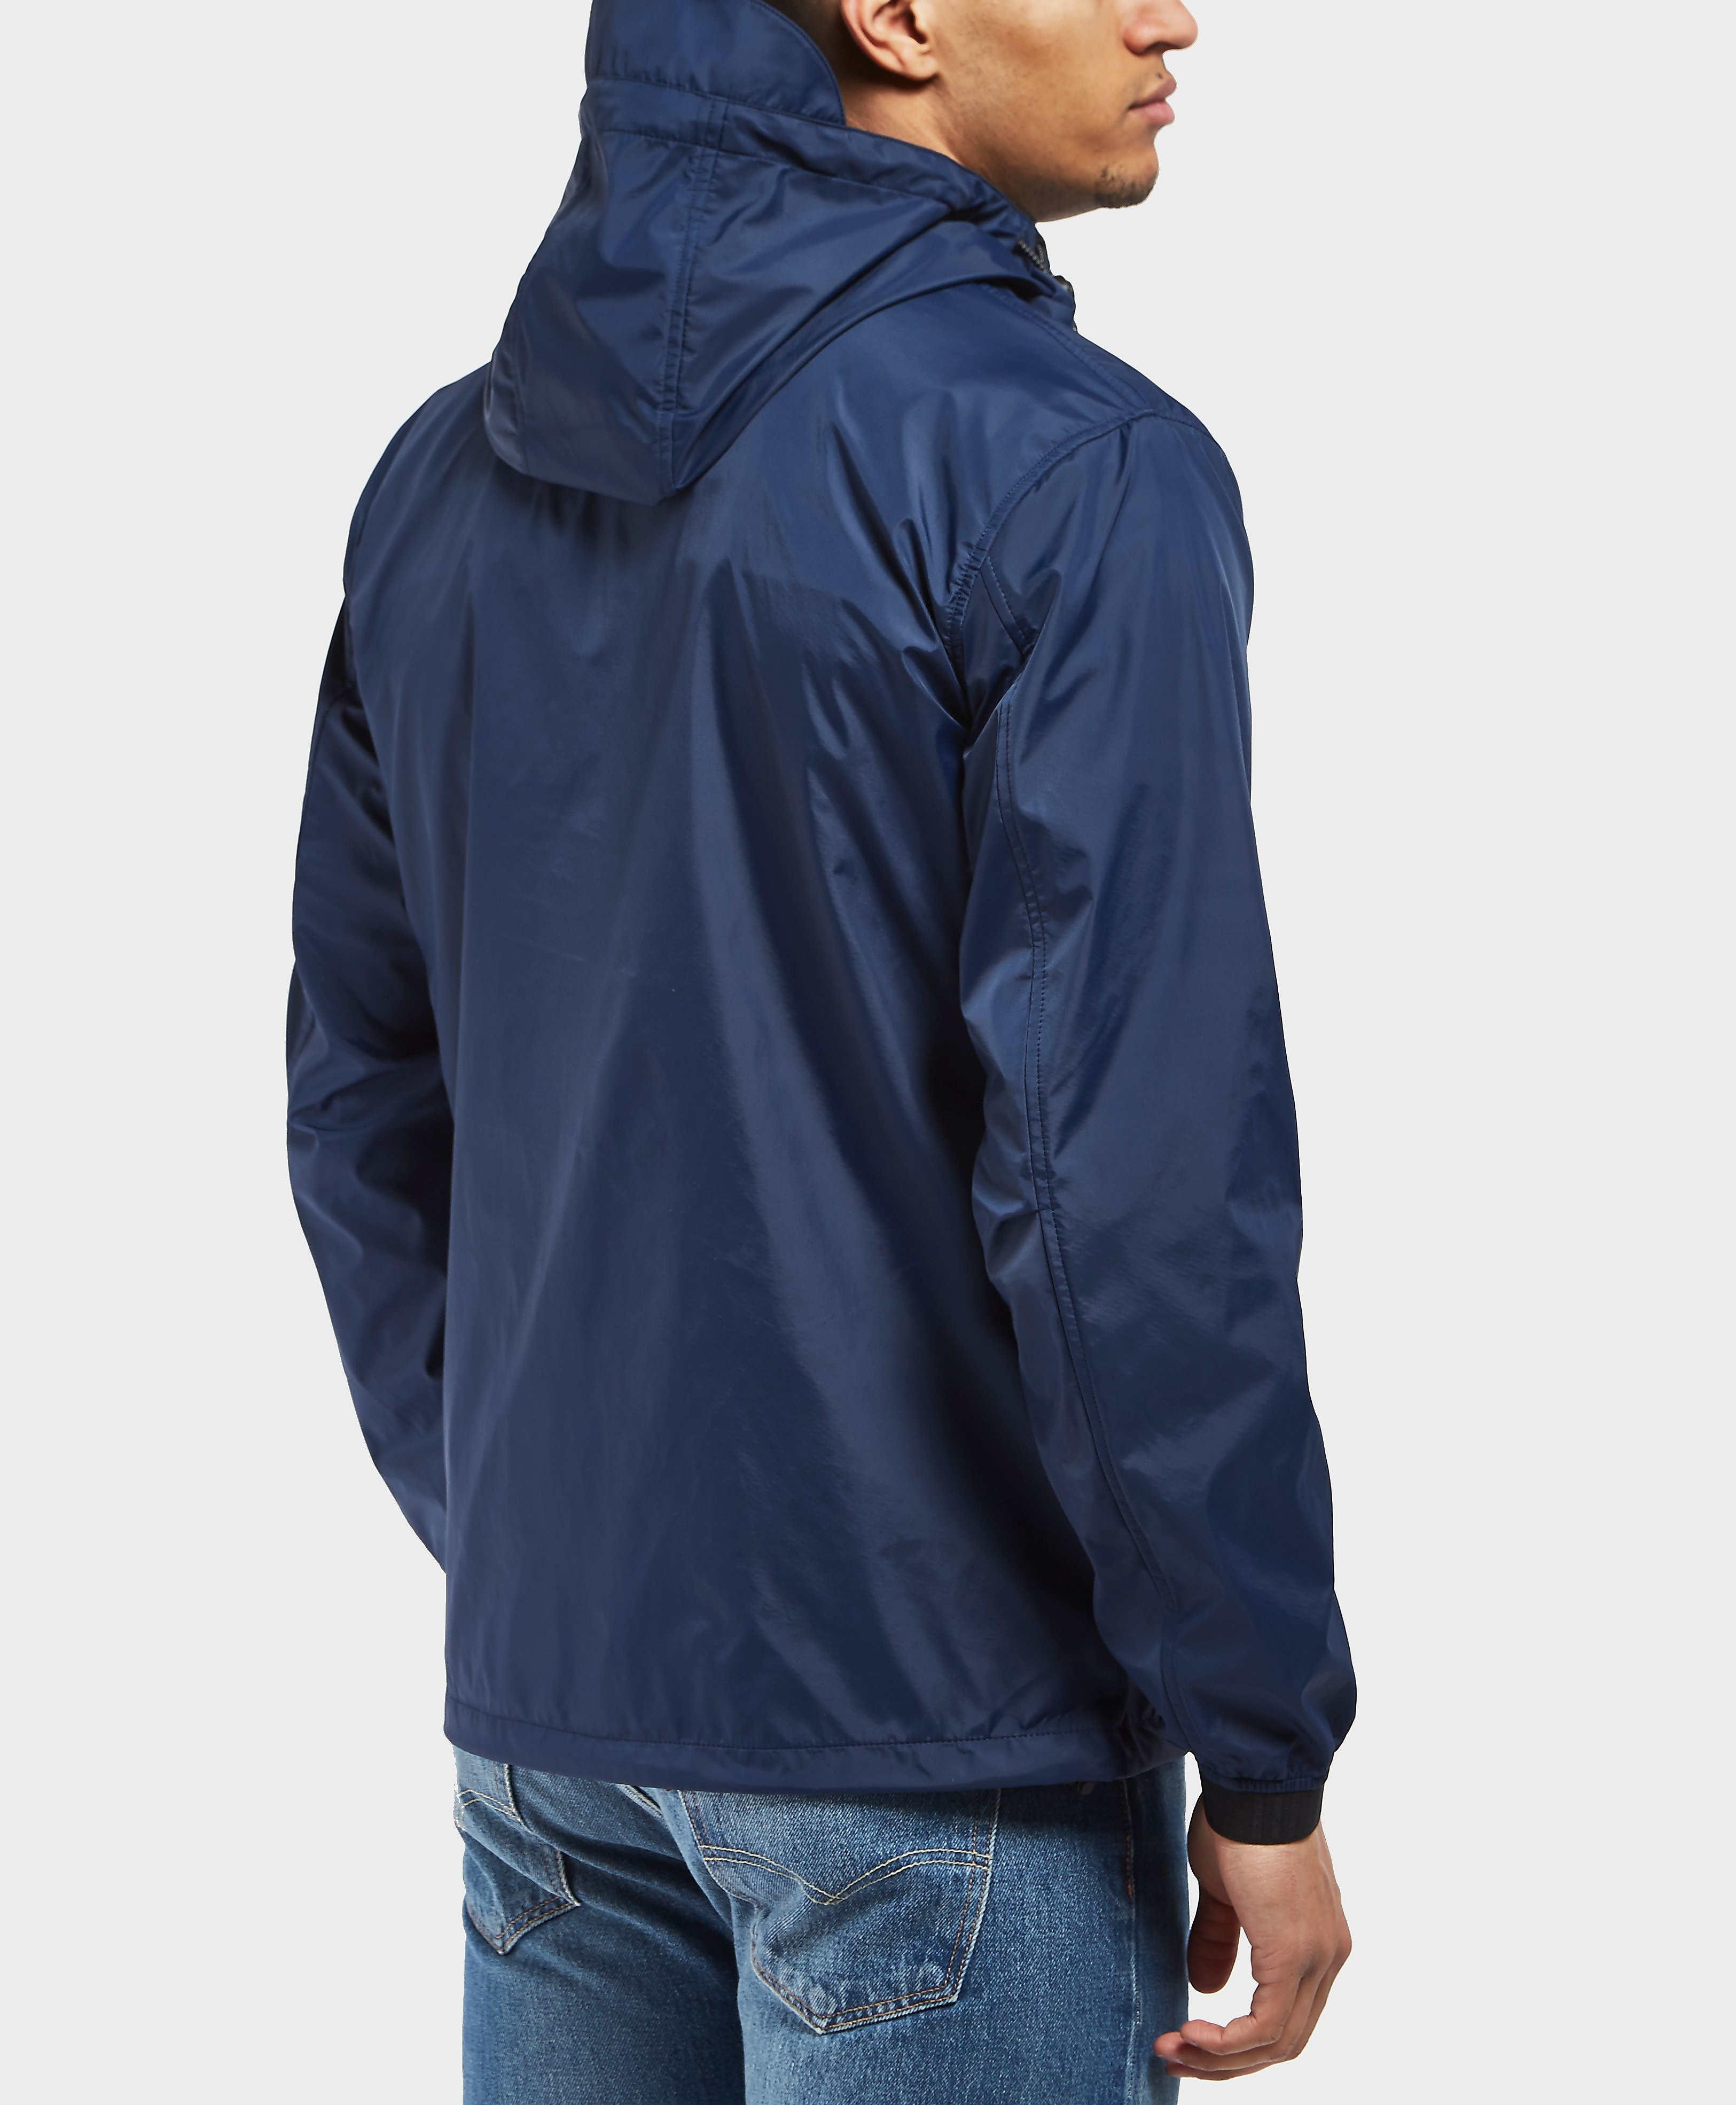 Penfield Squall Bonded Lightweight Jacket